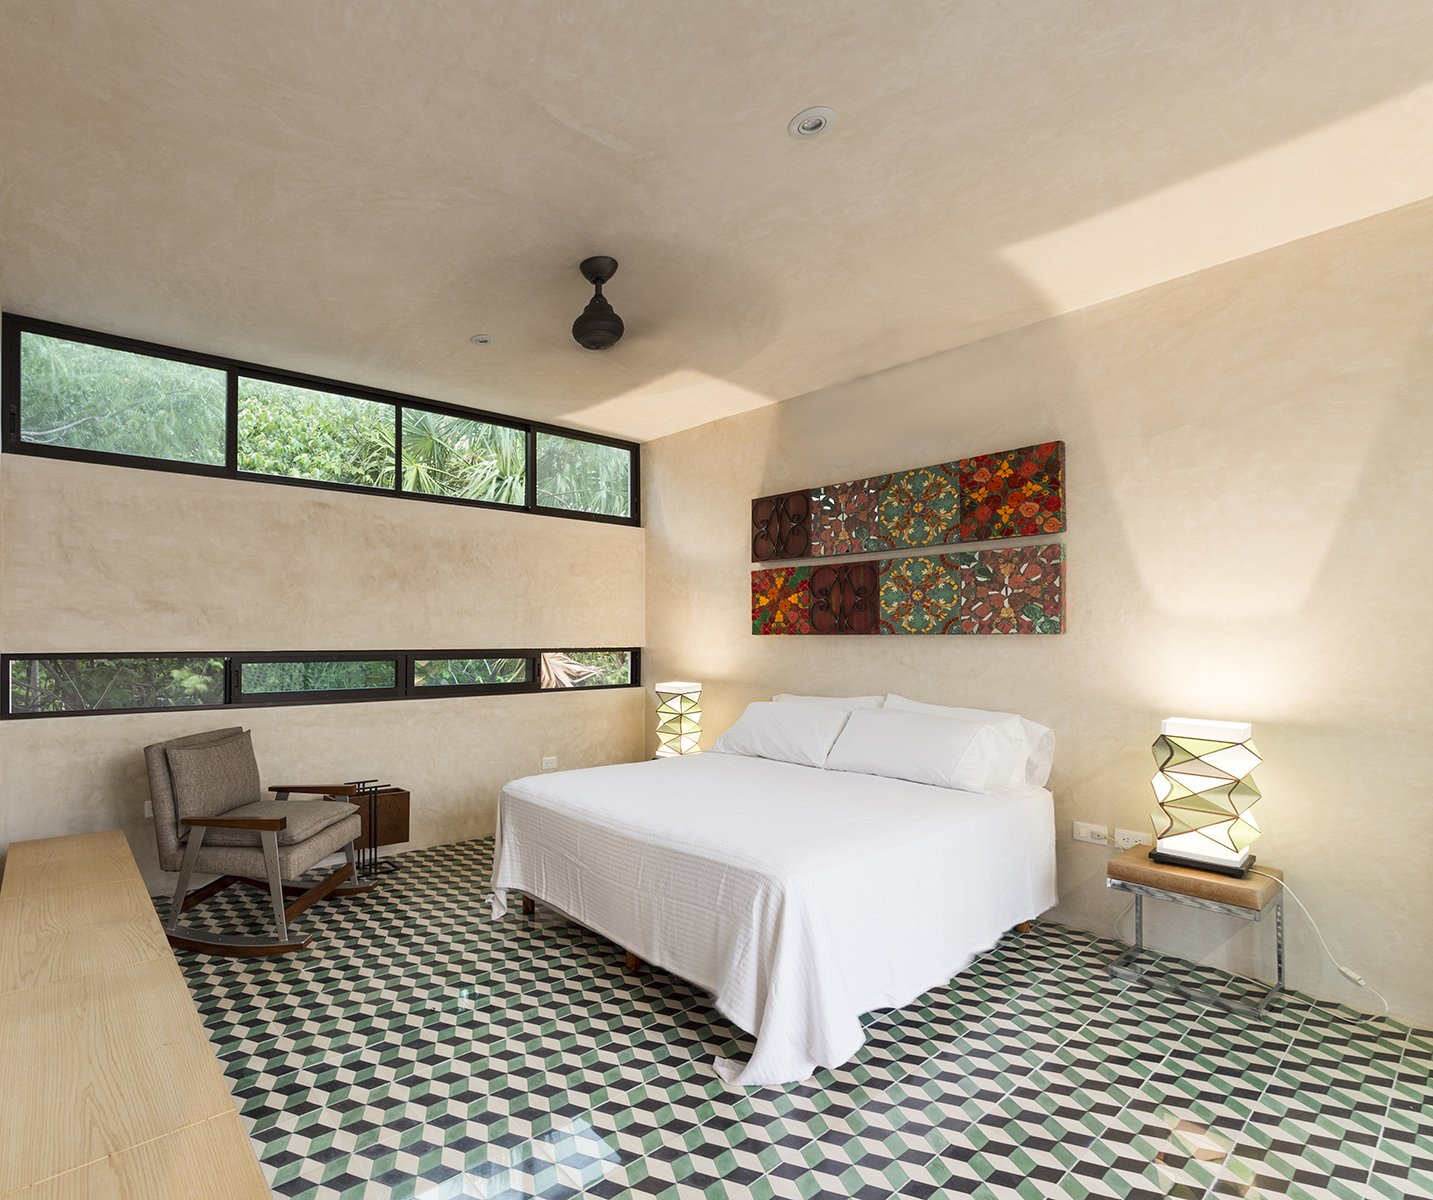 Upstairs bedroom take advantage of the natural surounding from the neighborhood Tagged: Bedroom, Bed, Table Lighting, Cement Tile Floor, Chair, and Bench.  Lemon Tree House by Taller Estilo Arquitectura S de R.L de C.V